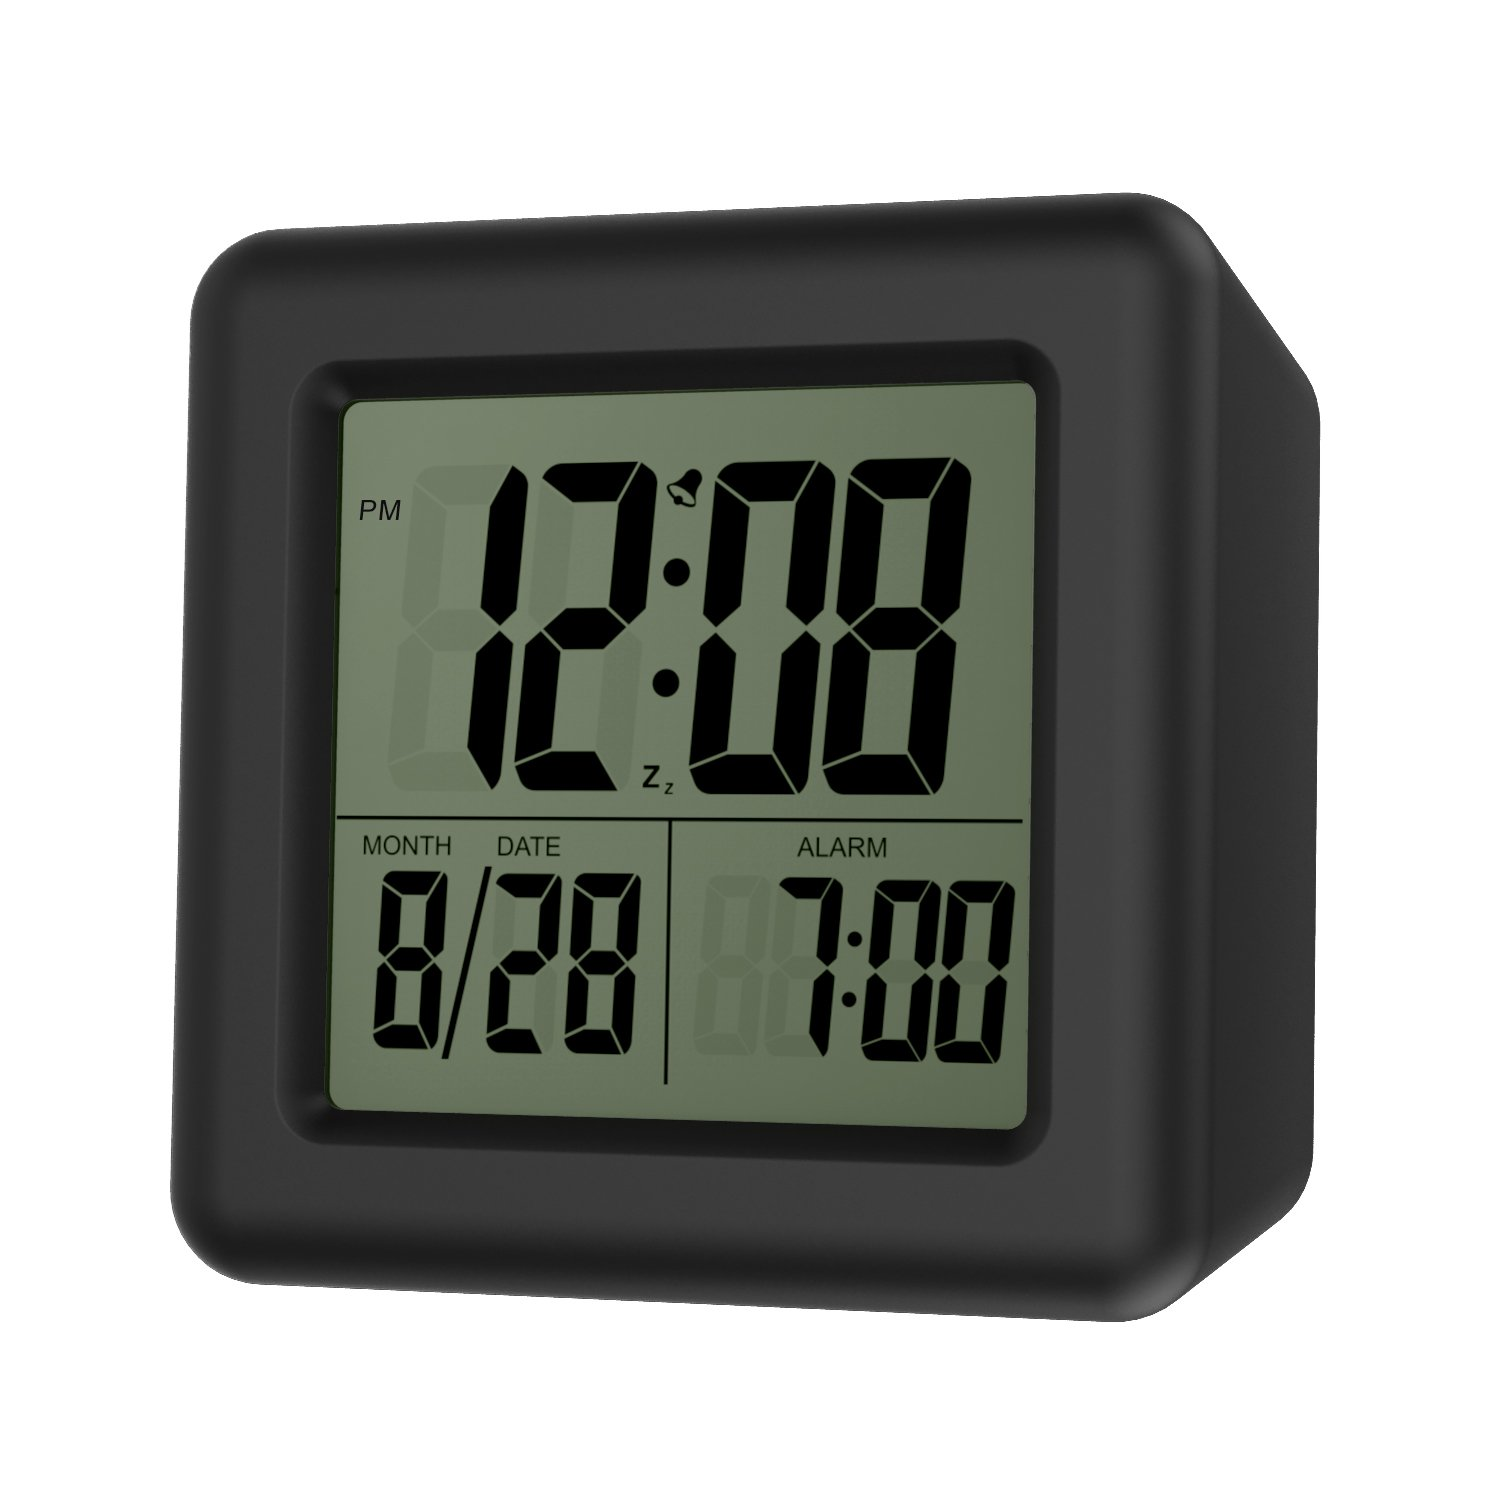 MoKo Digital Alarm Clock, Wake Up Alarm Table Bedside Clock LCD Display Battery Powered Small Clock with Snooze Function/Calendar/Backlight for Bedroom Home Office - Black